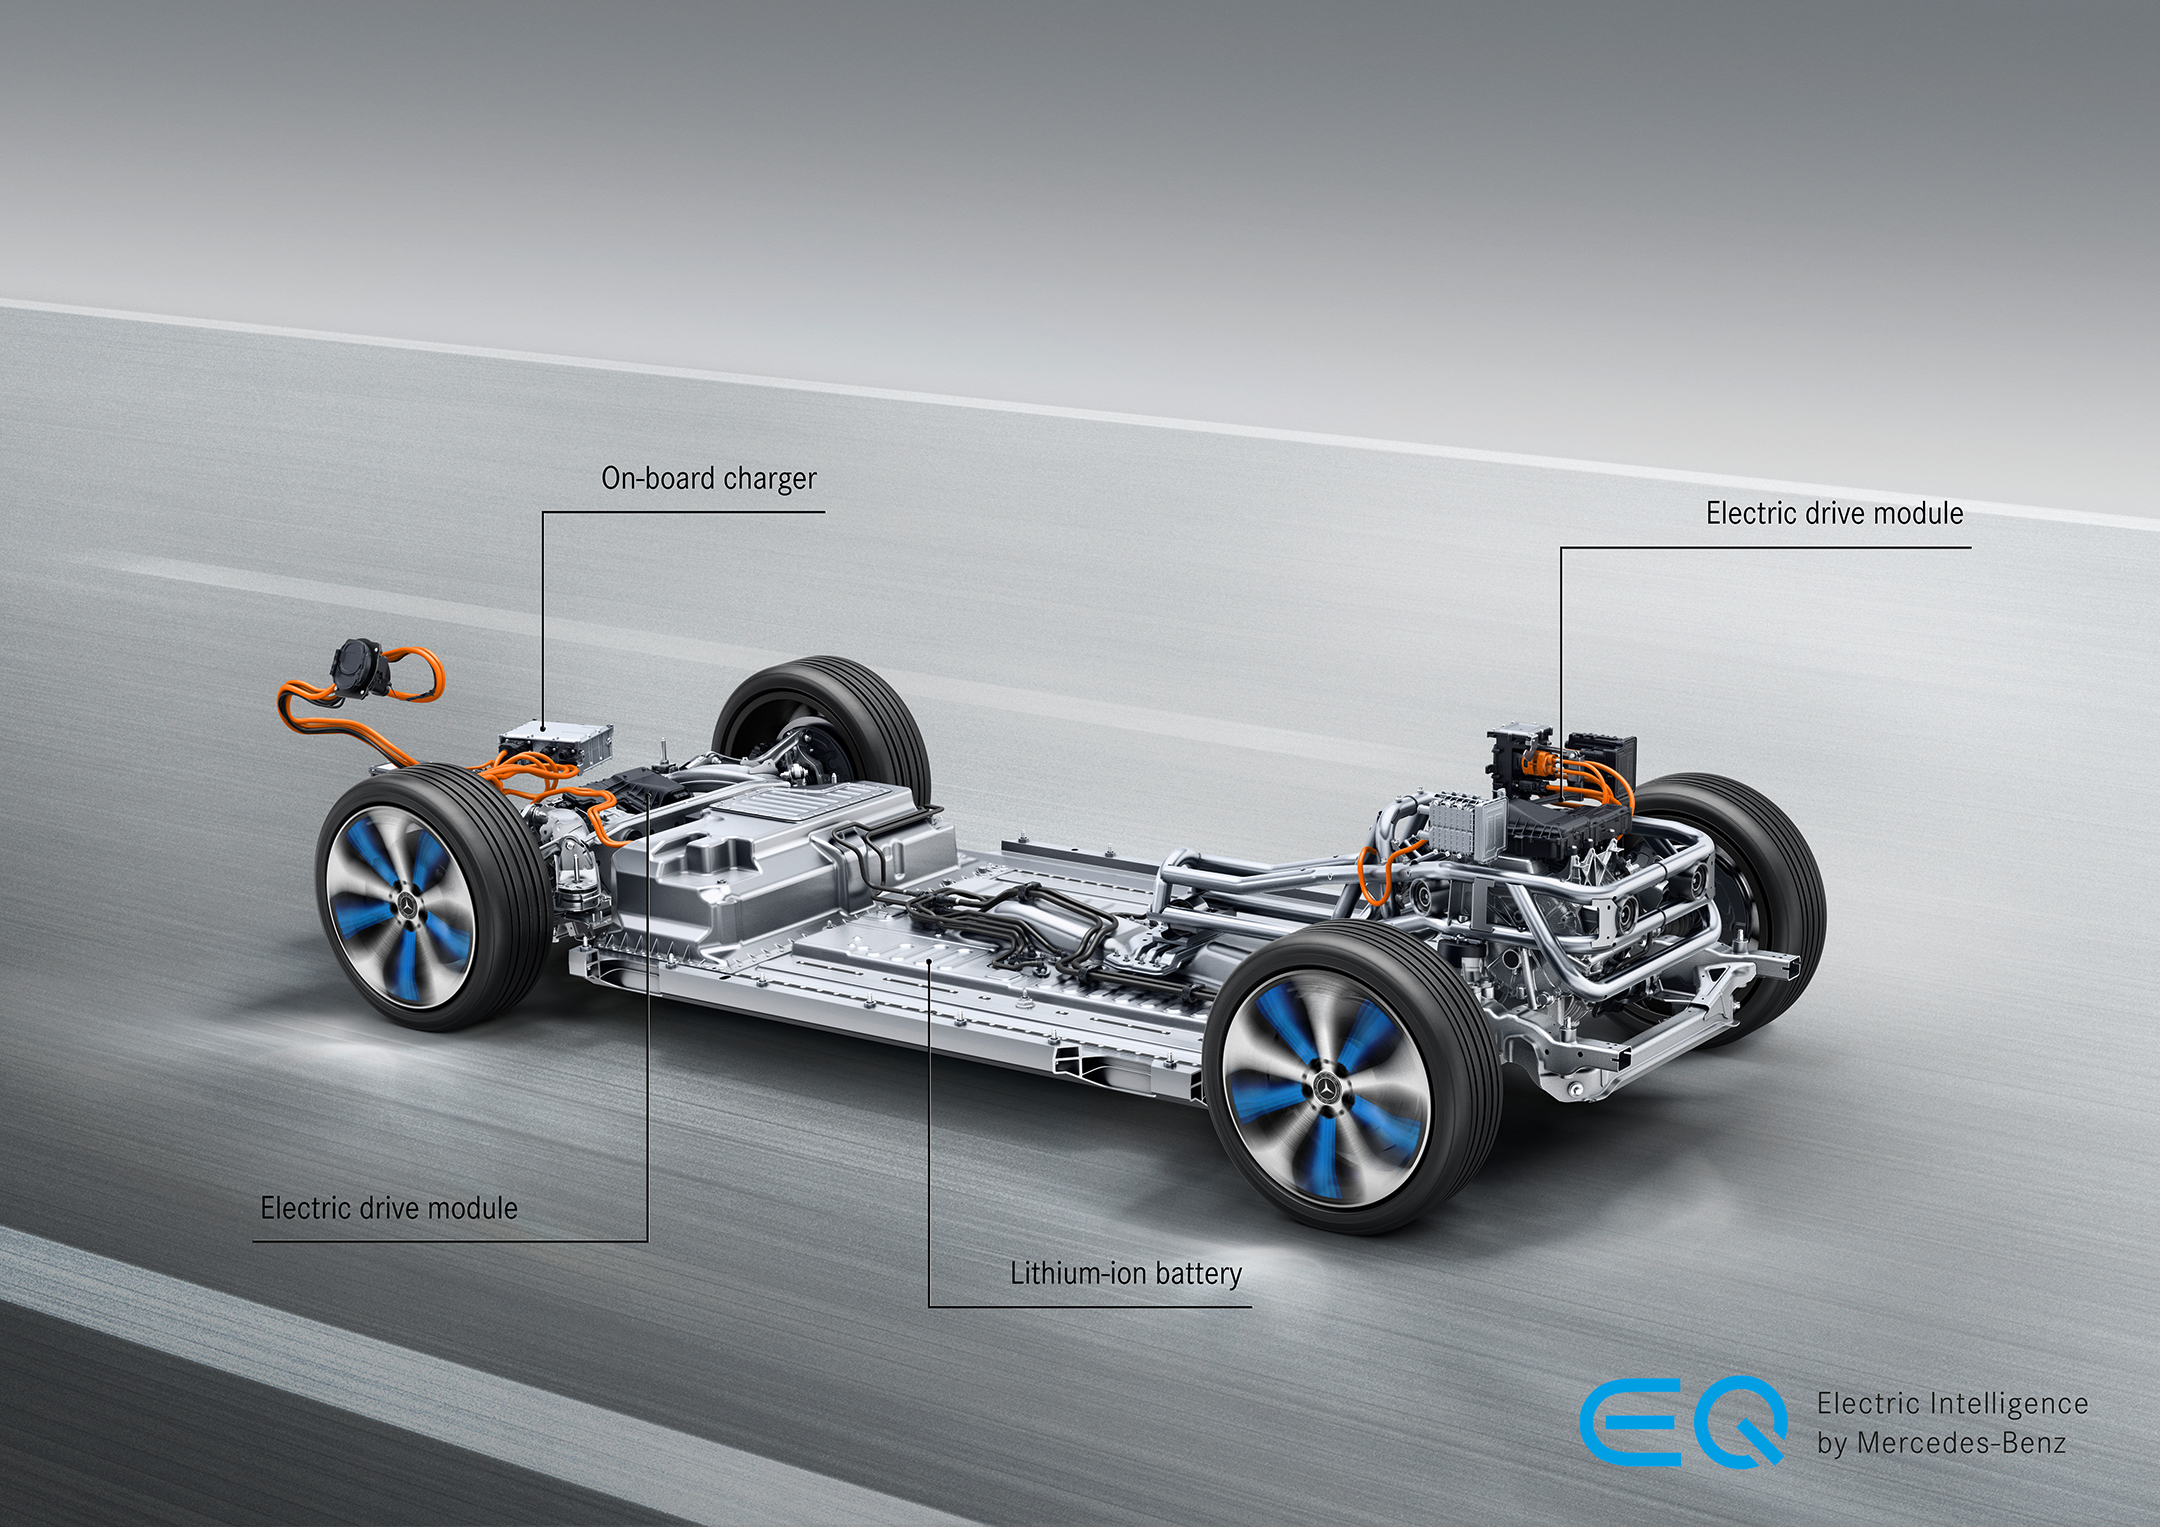 Mercedes-Benz EQC - 2019 - 2x electro motors - powertrain - 300 kW - 765 Nm